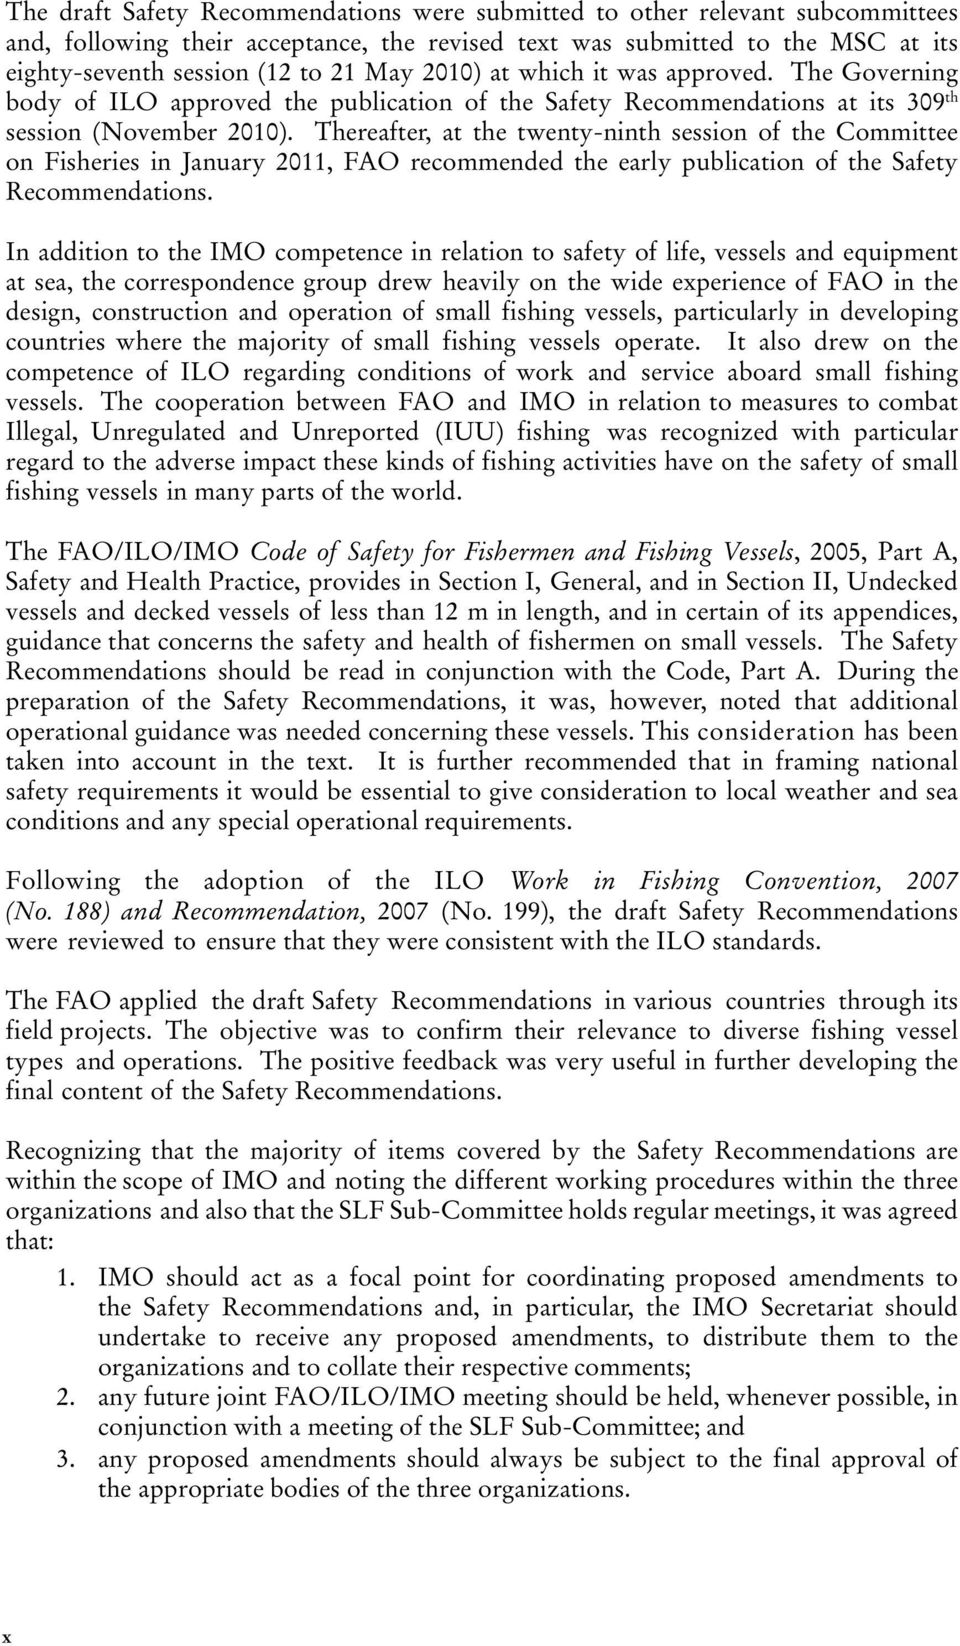 Thereafter, at the twenty-ninth session of the Committee on Fisheries in January 2011, FAO recommended the early publication of the Safety Recommendations.